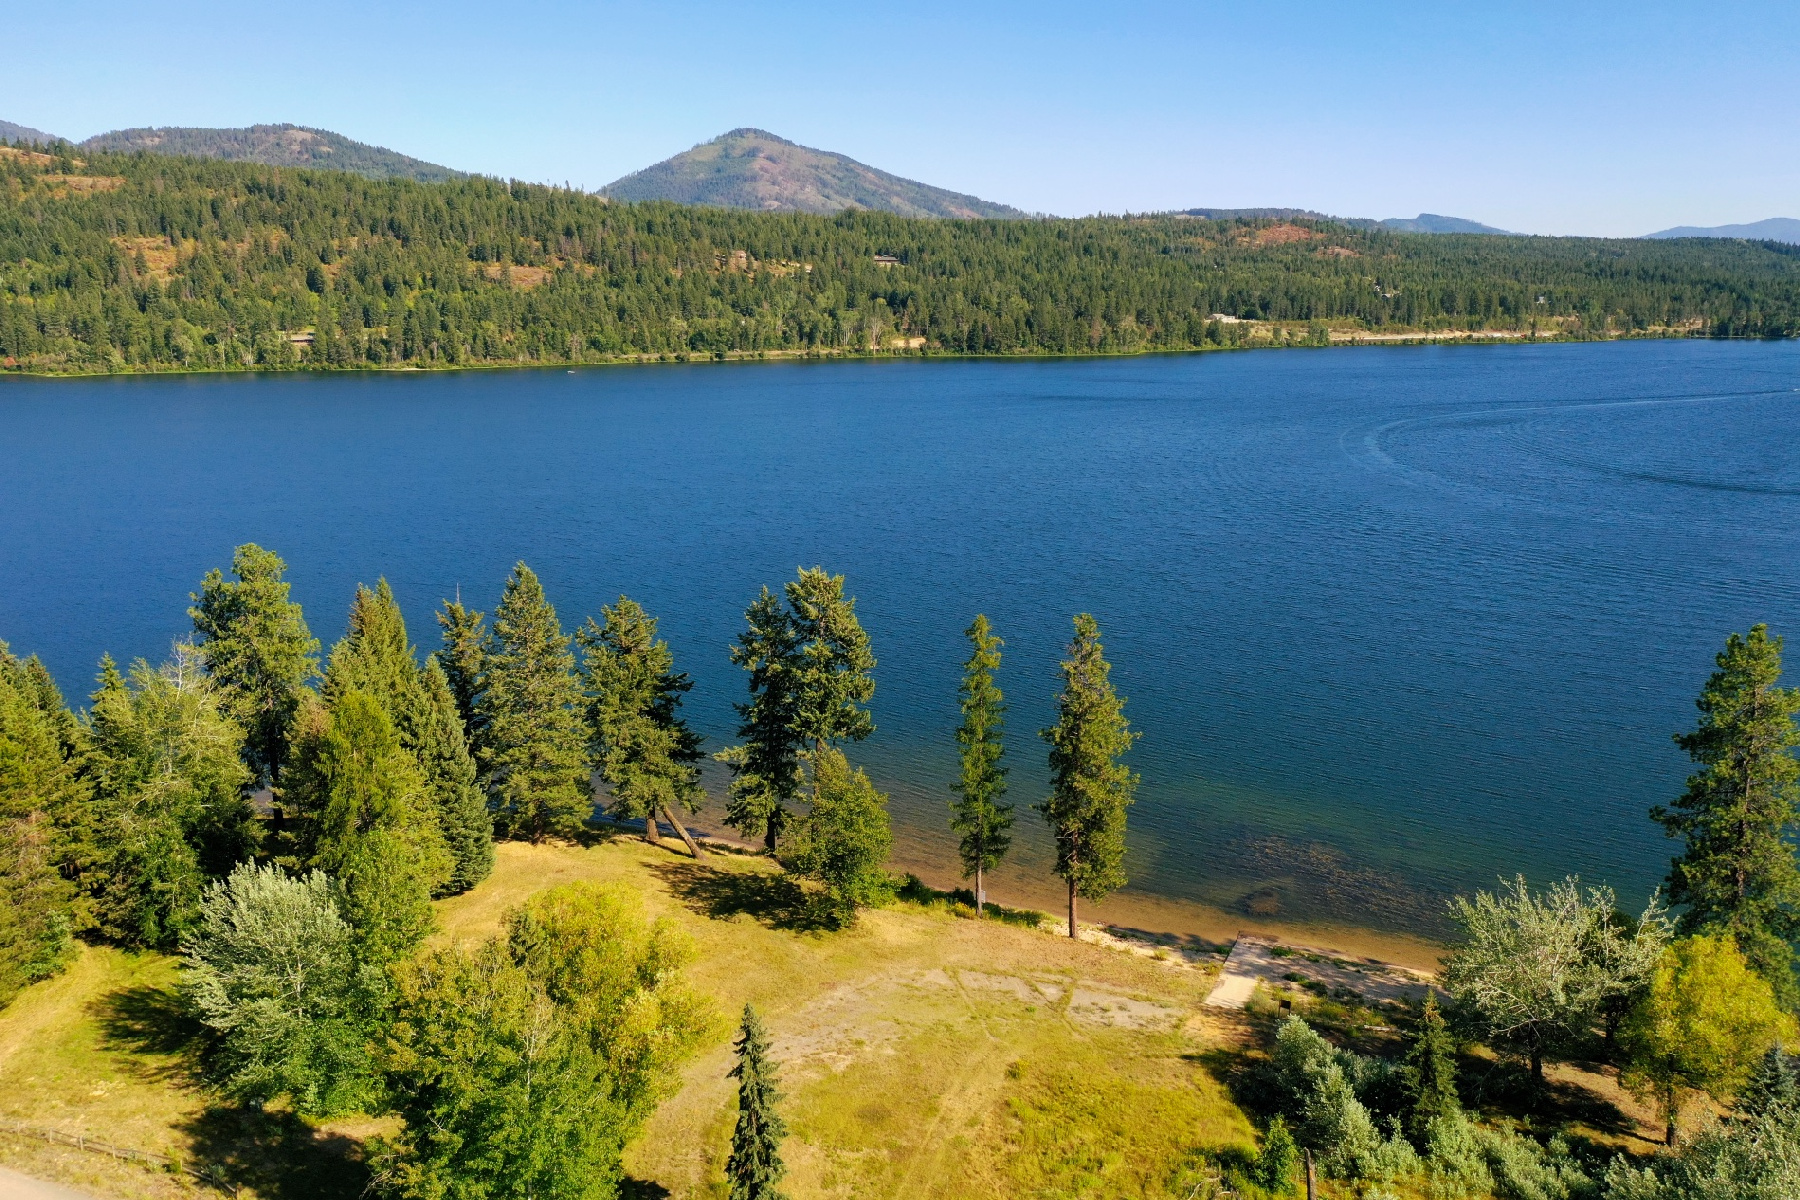 Terreno por un Venta en Your own private sandy beach on Lake Cocolalla, Lot 3 Lot 3 Sandy Beach Ln Cocolalla, Idaho 83813 Estados Unidos